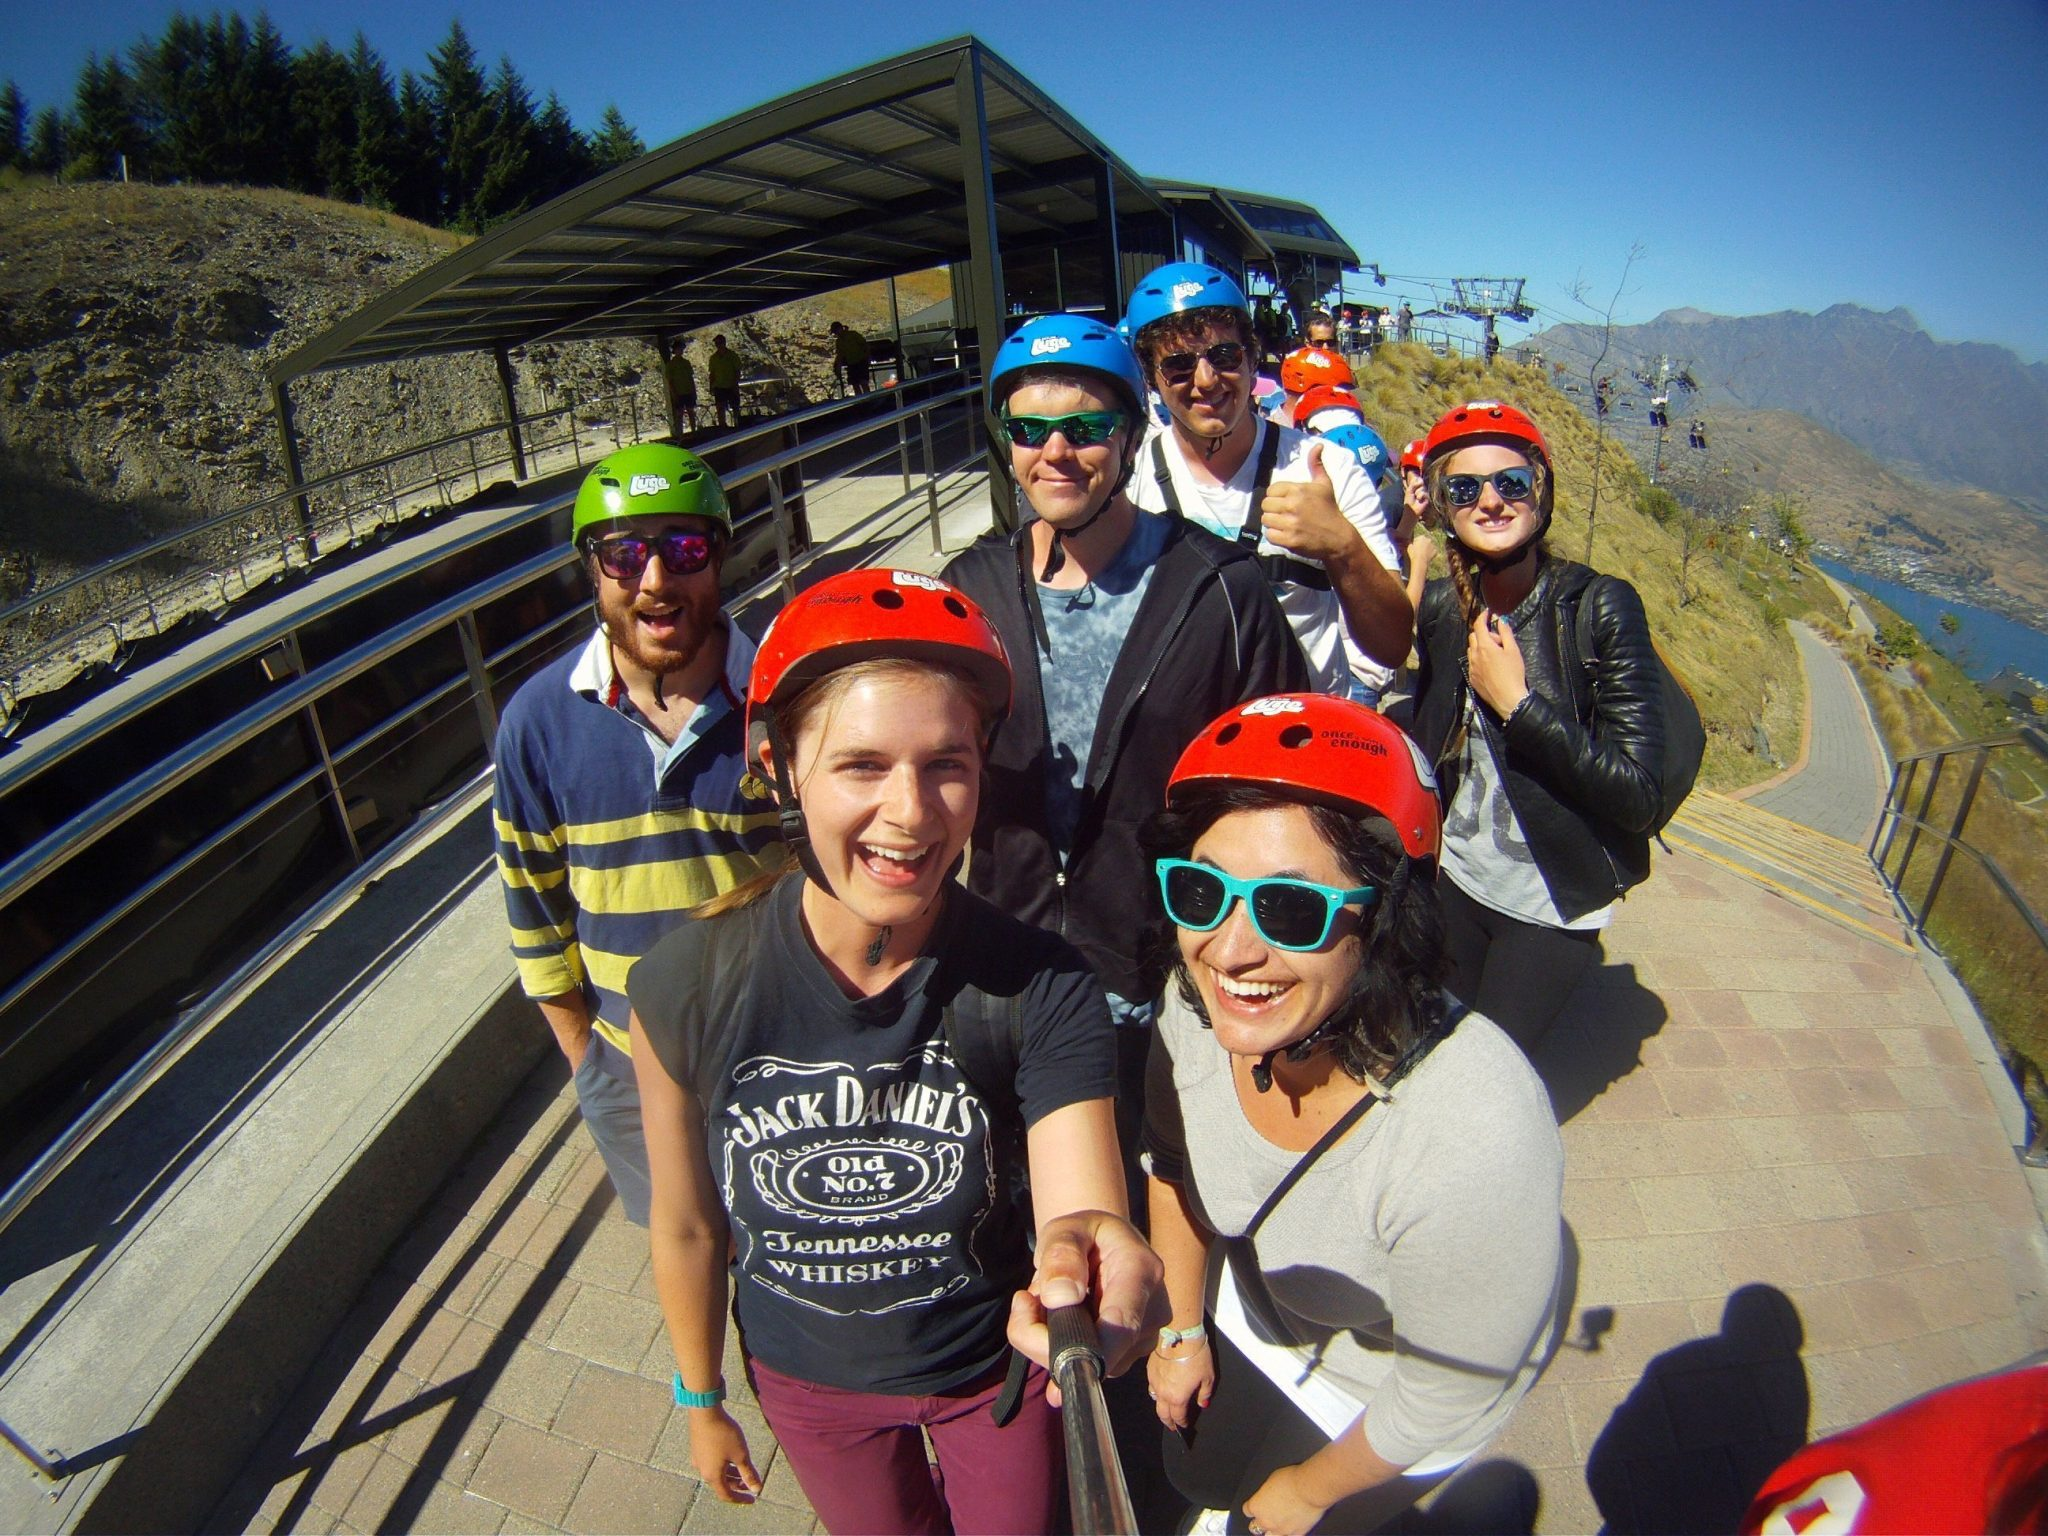 Luging with new friends - Queenstown, New Zealand